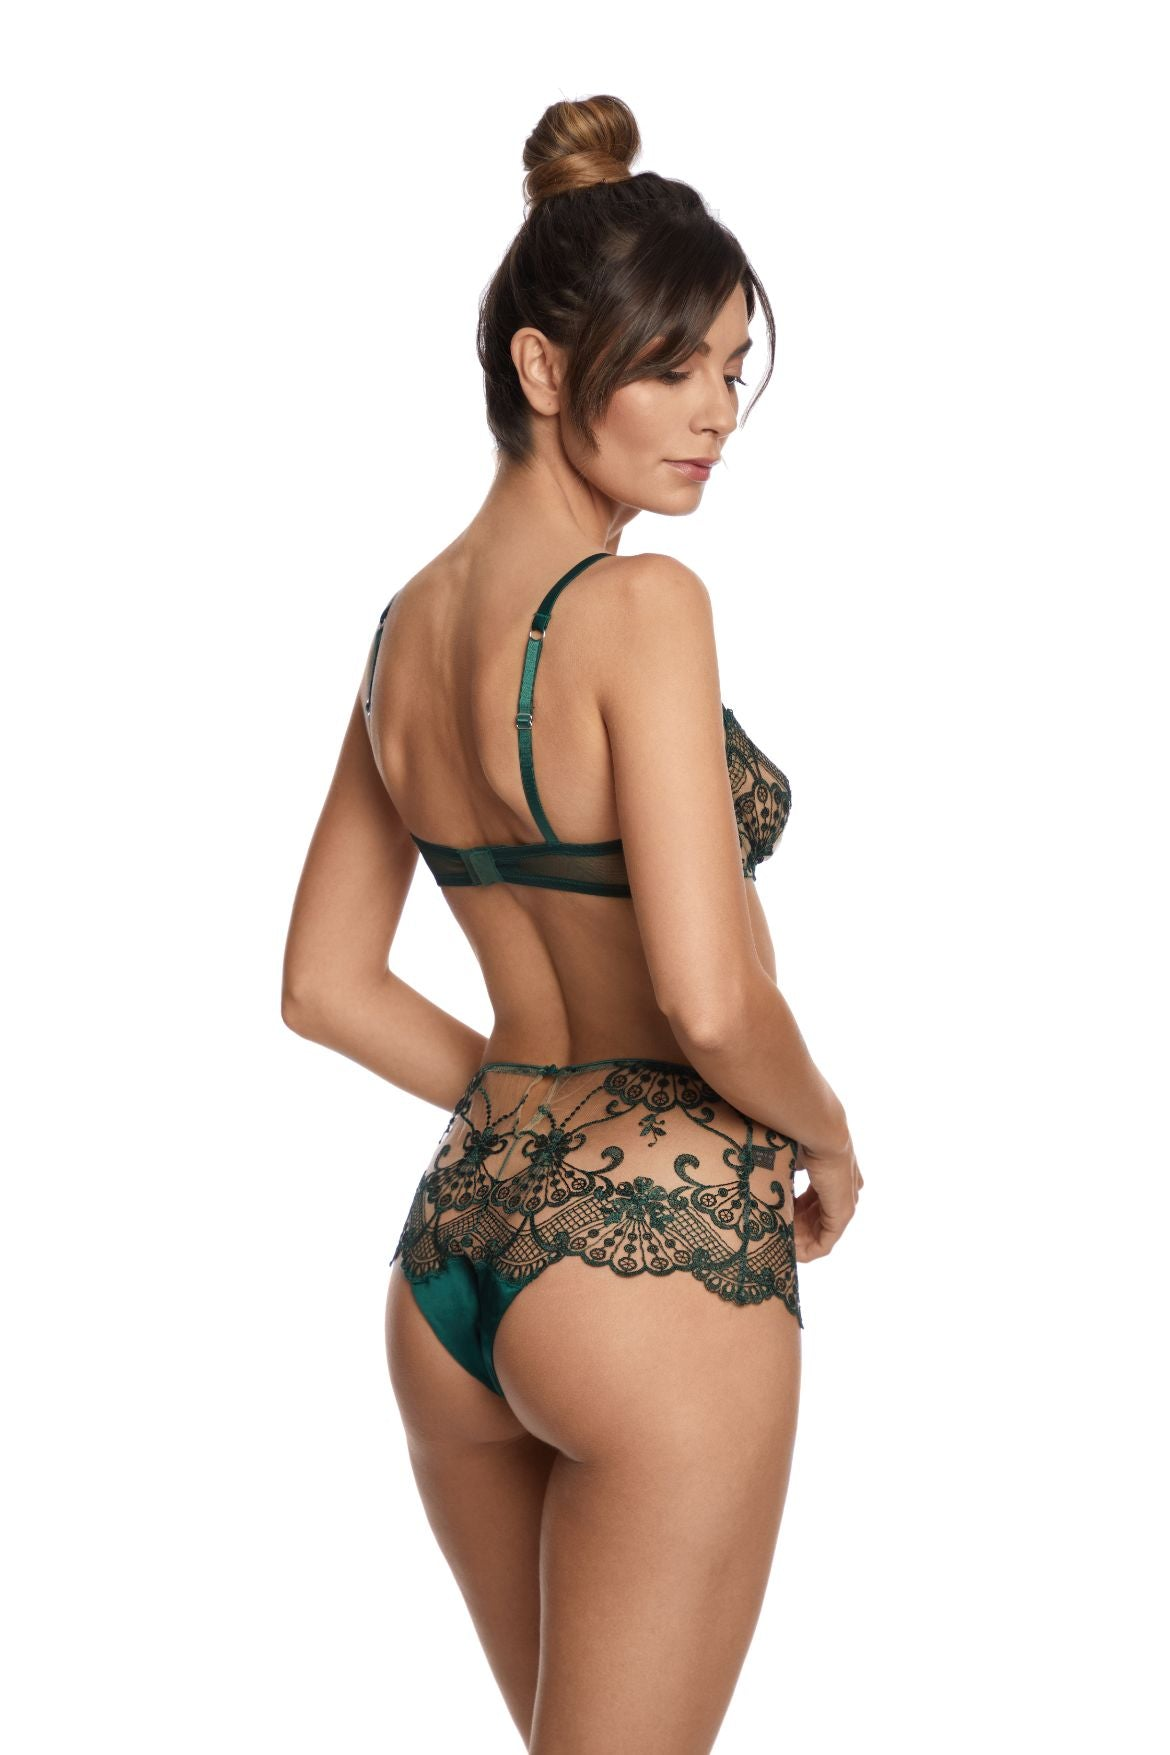 I.D. Sarrieri embroidered high waist brief in green